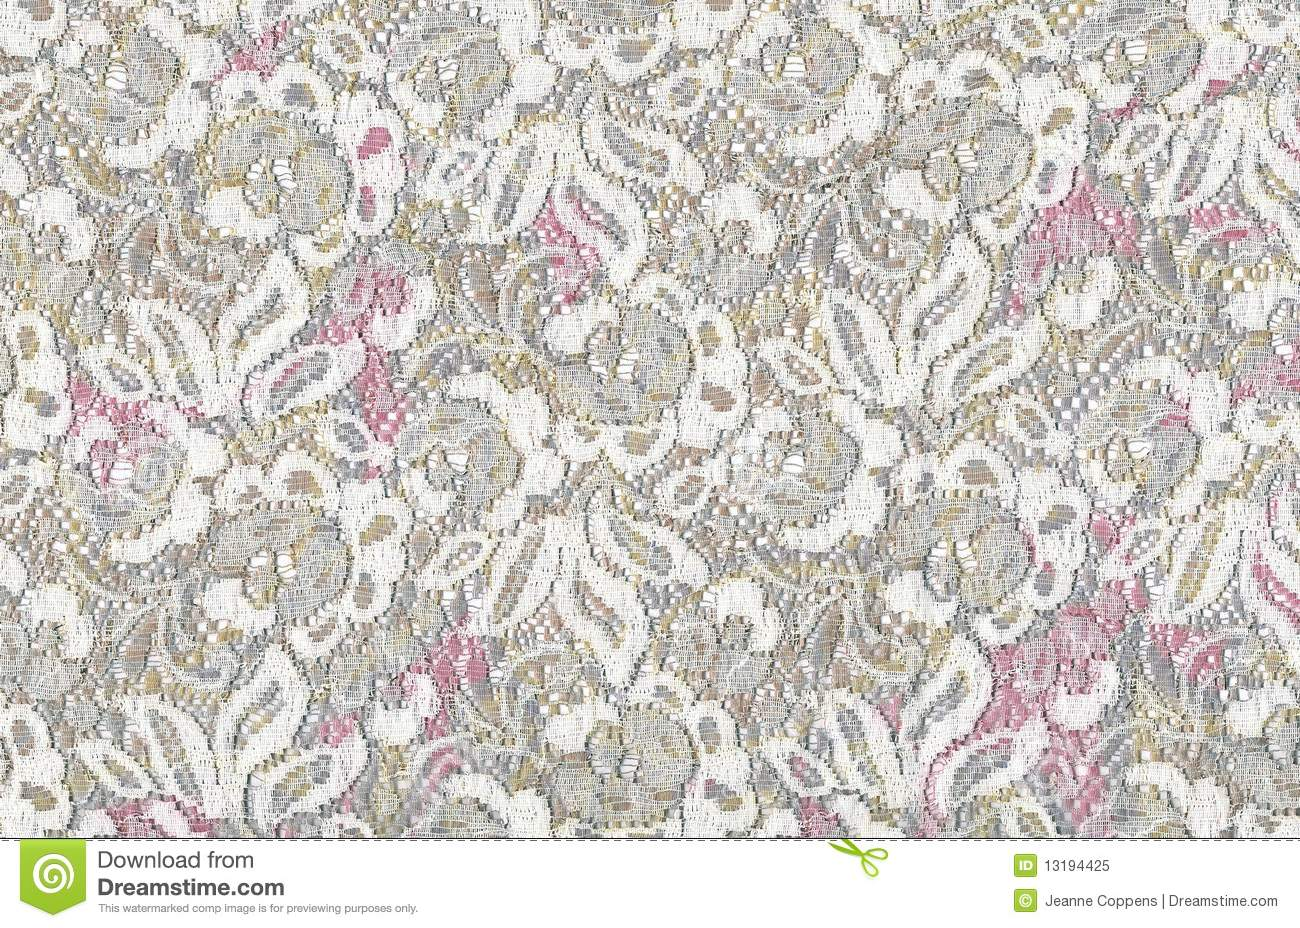 Lace background in pastels colors royalty free stock photo image 13194425 - Pastel lace wallpaper ...